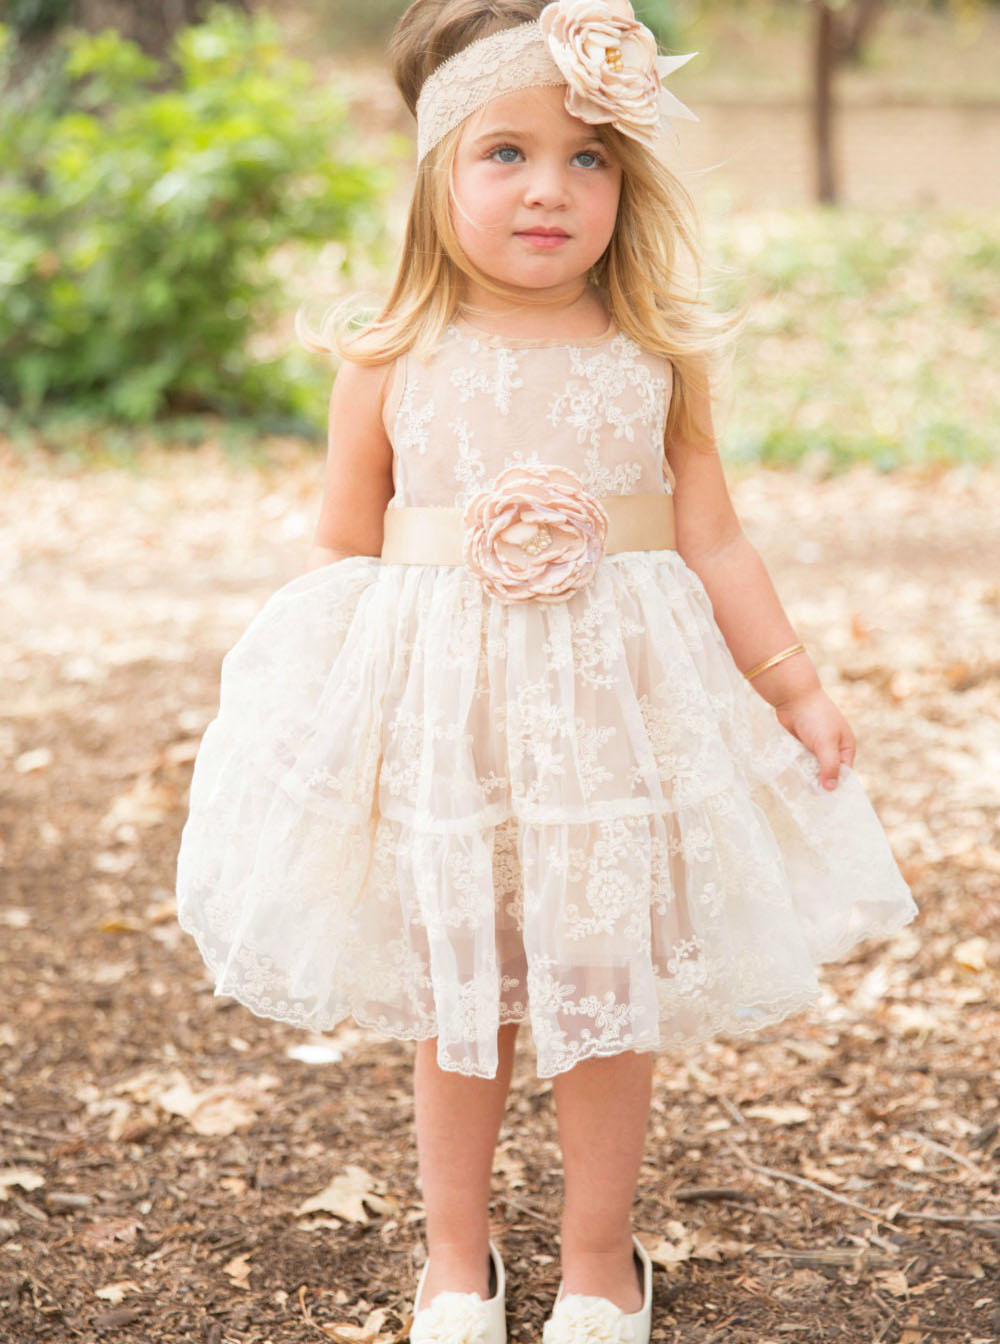 A-Line Light Champagne Lace Flower Girl Dress with Flowers